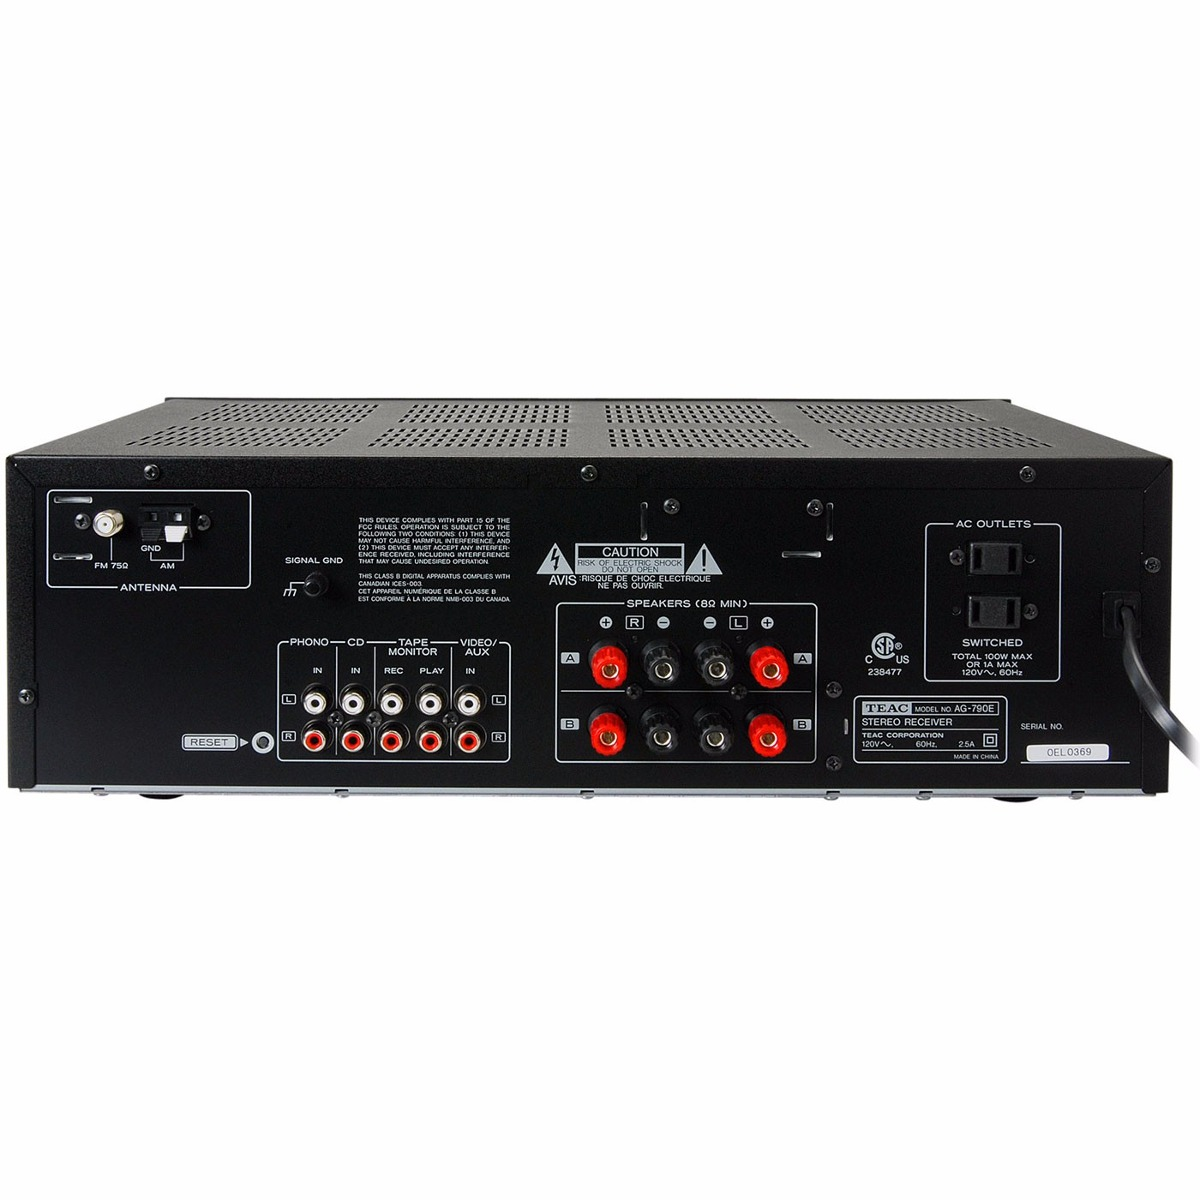 843  lificador De Potencia Machine W Vox A2500 Mix 70v in addition 7C 7C  avland co uk 7Cteac 7Cag7d 7Cag7dlrg besides 773  lificador Fortssimo Sa3 60w 3 Setores 7890000005562 additionally Receiver   Radio Fm Ag790a Teac moreover 1150  lificador Para Som Ambiente Nca Sa20 Loja De Som Ambiente Em Sp Sa20. on teac ag 790 receiver